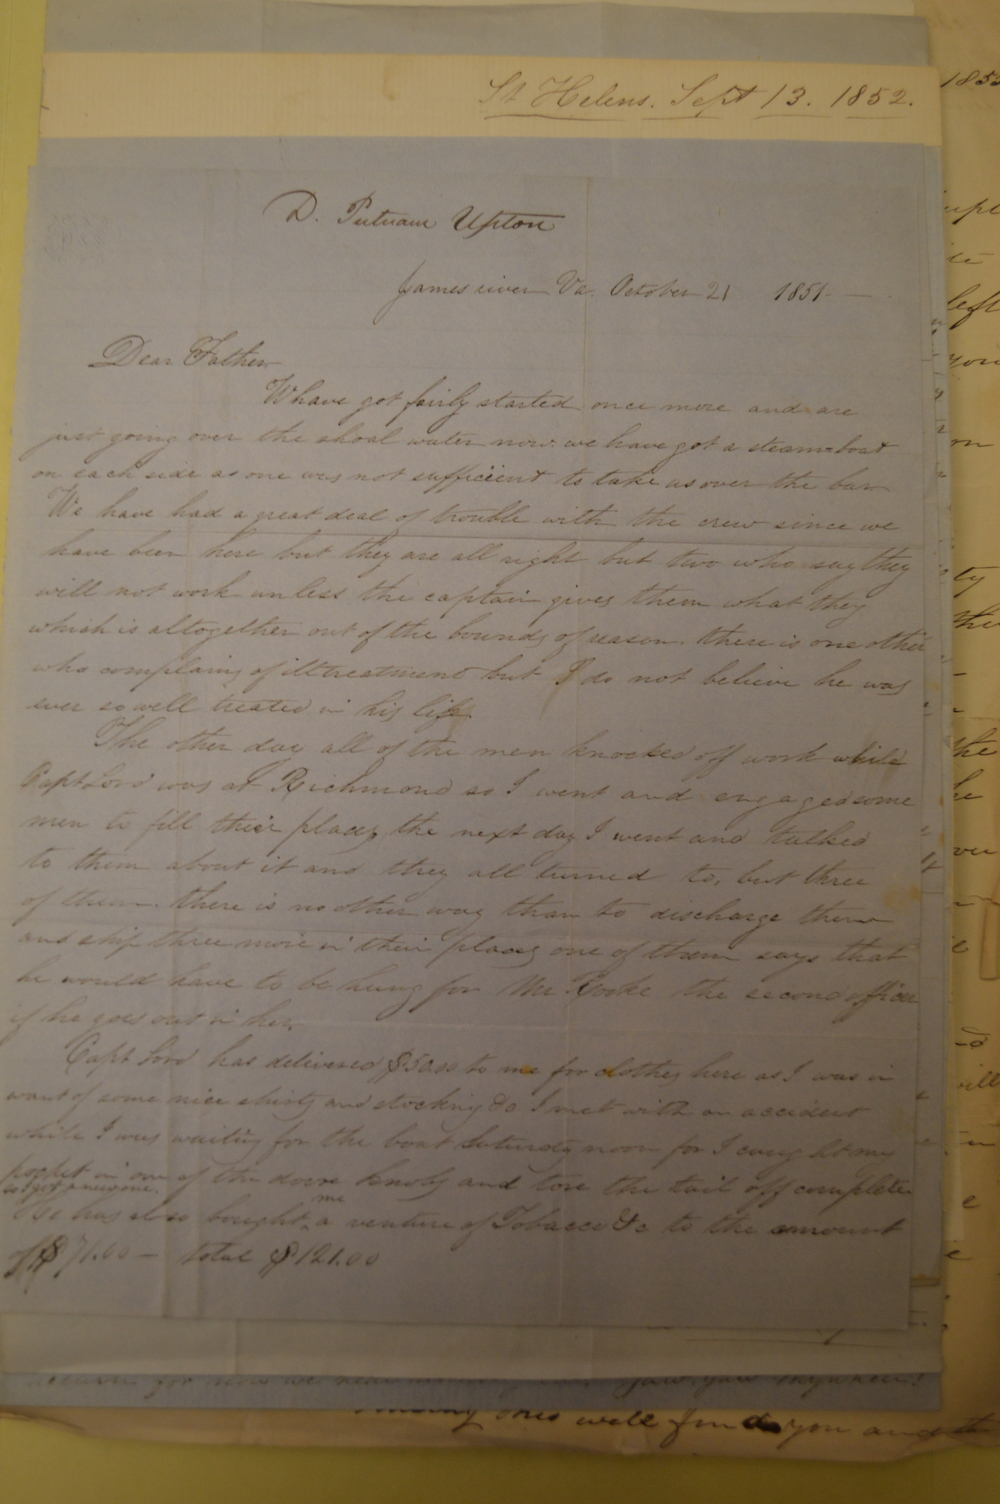 One of the 163 letters written by Daniel Putnam Upton, Captain of the Arizona